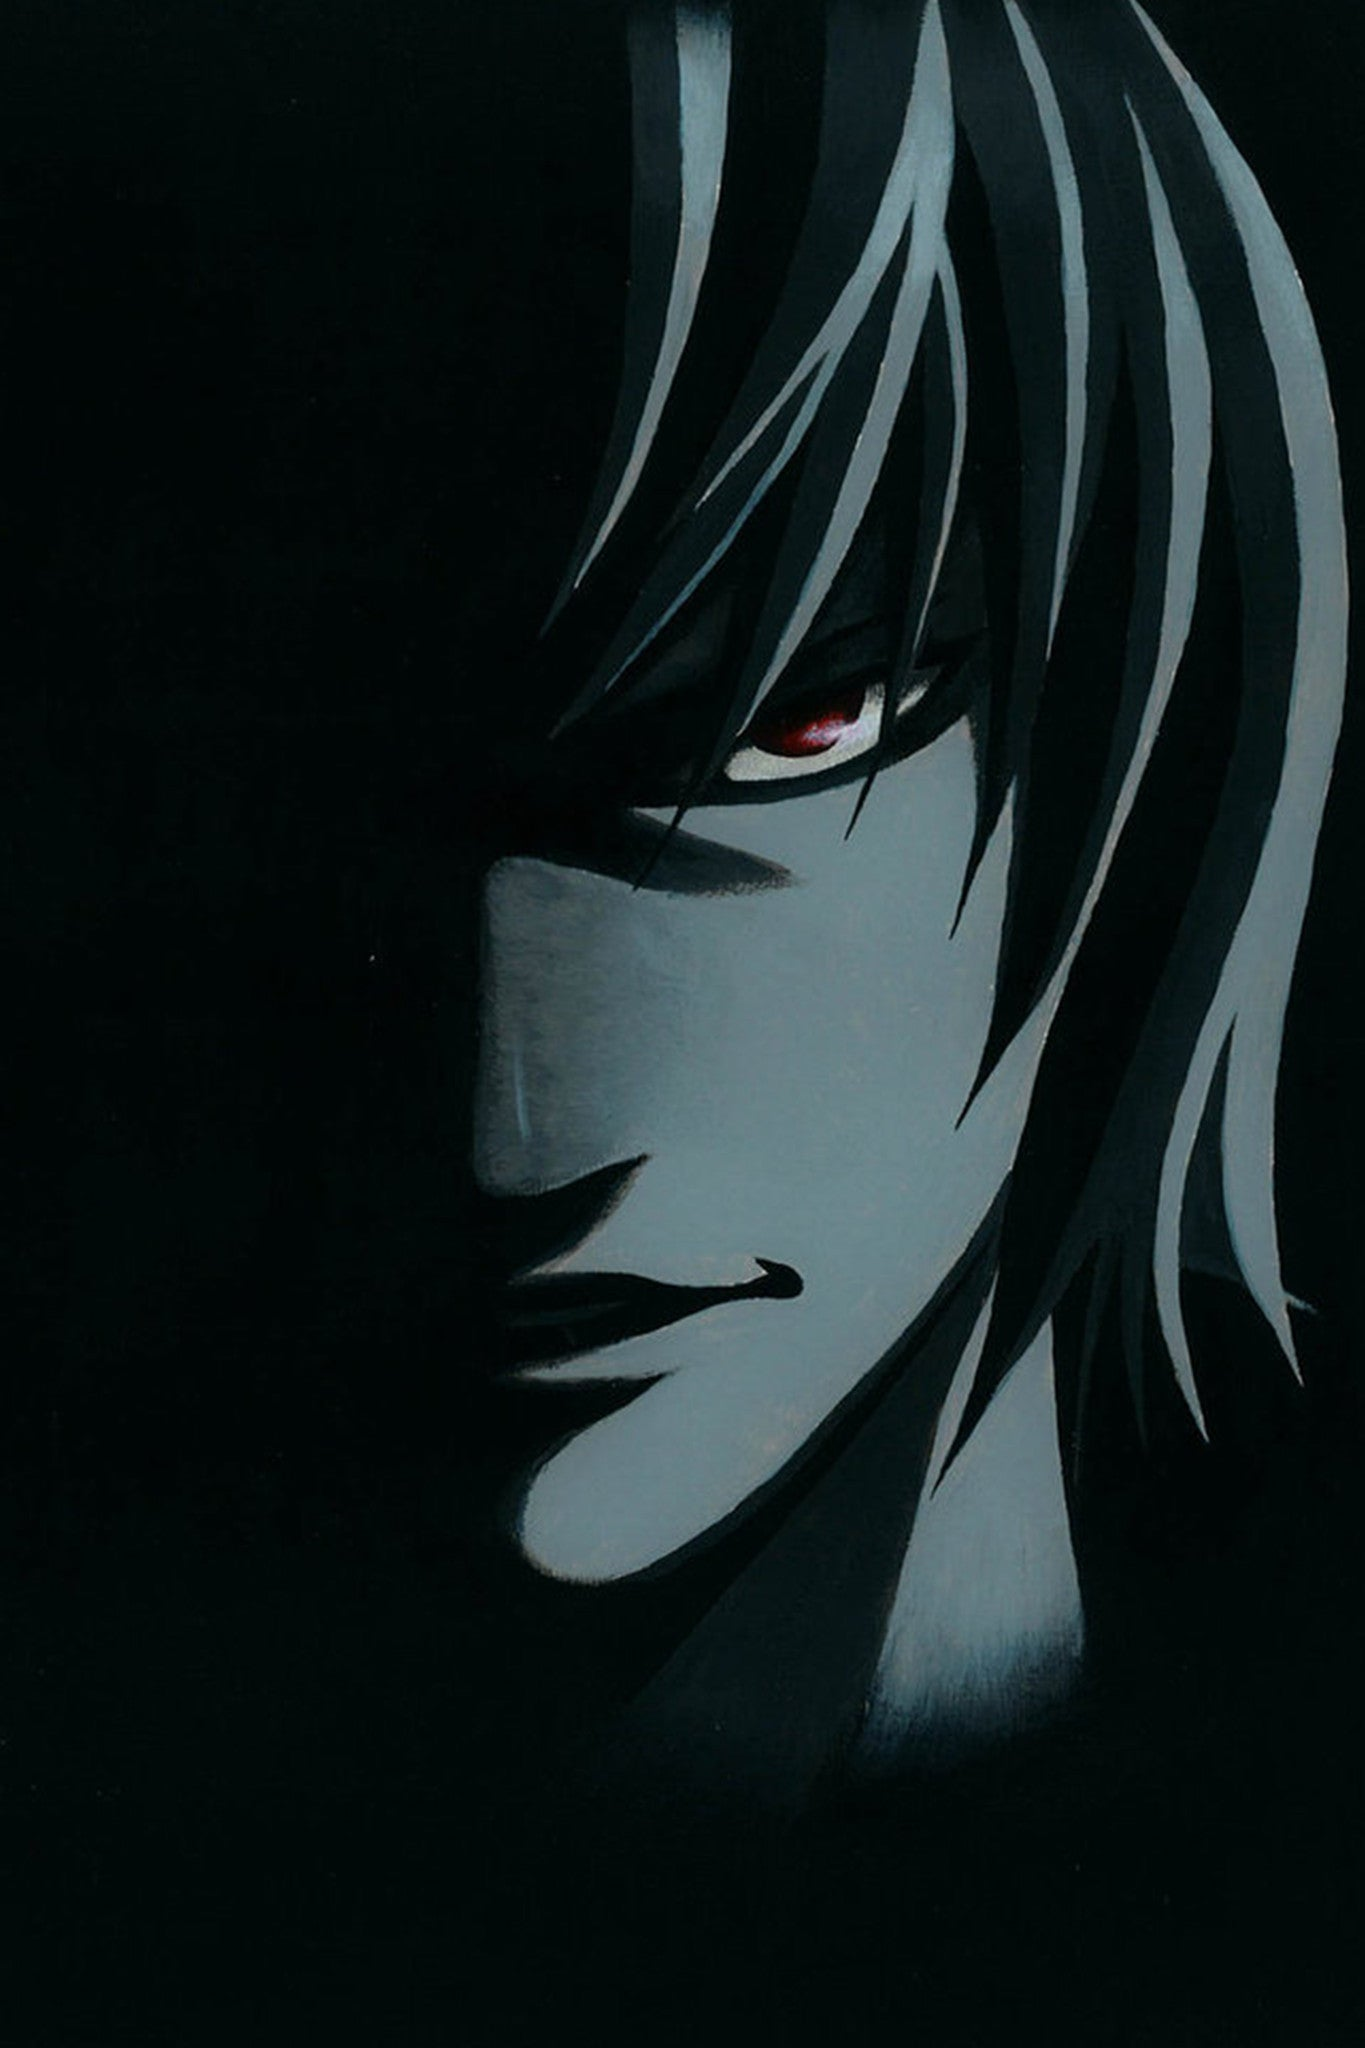 Anime light yagami from death note poster in india by sillypunter